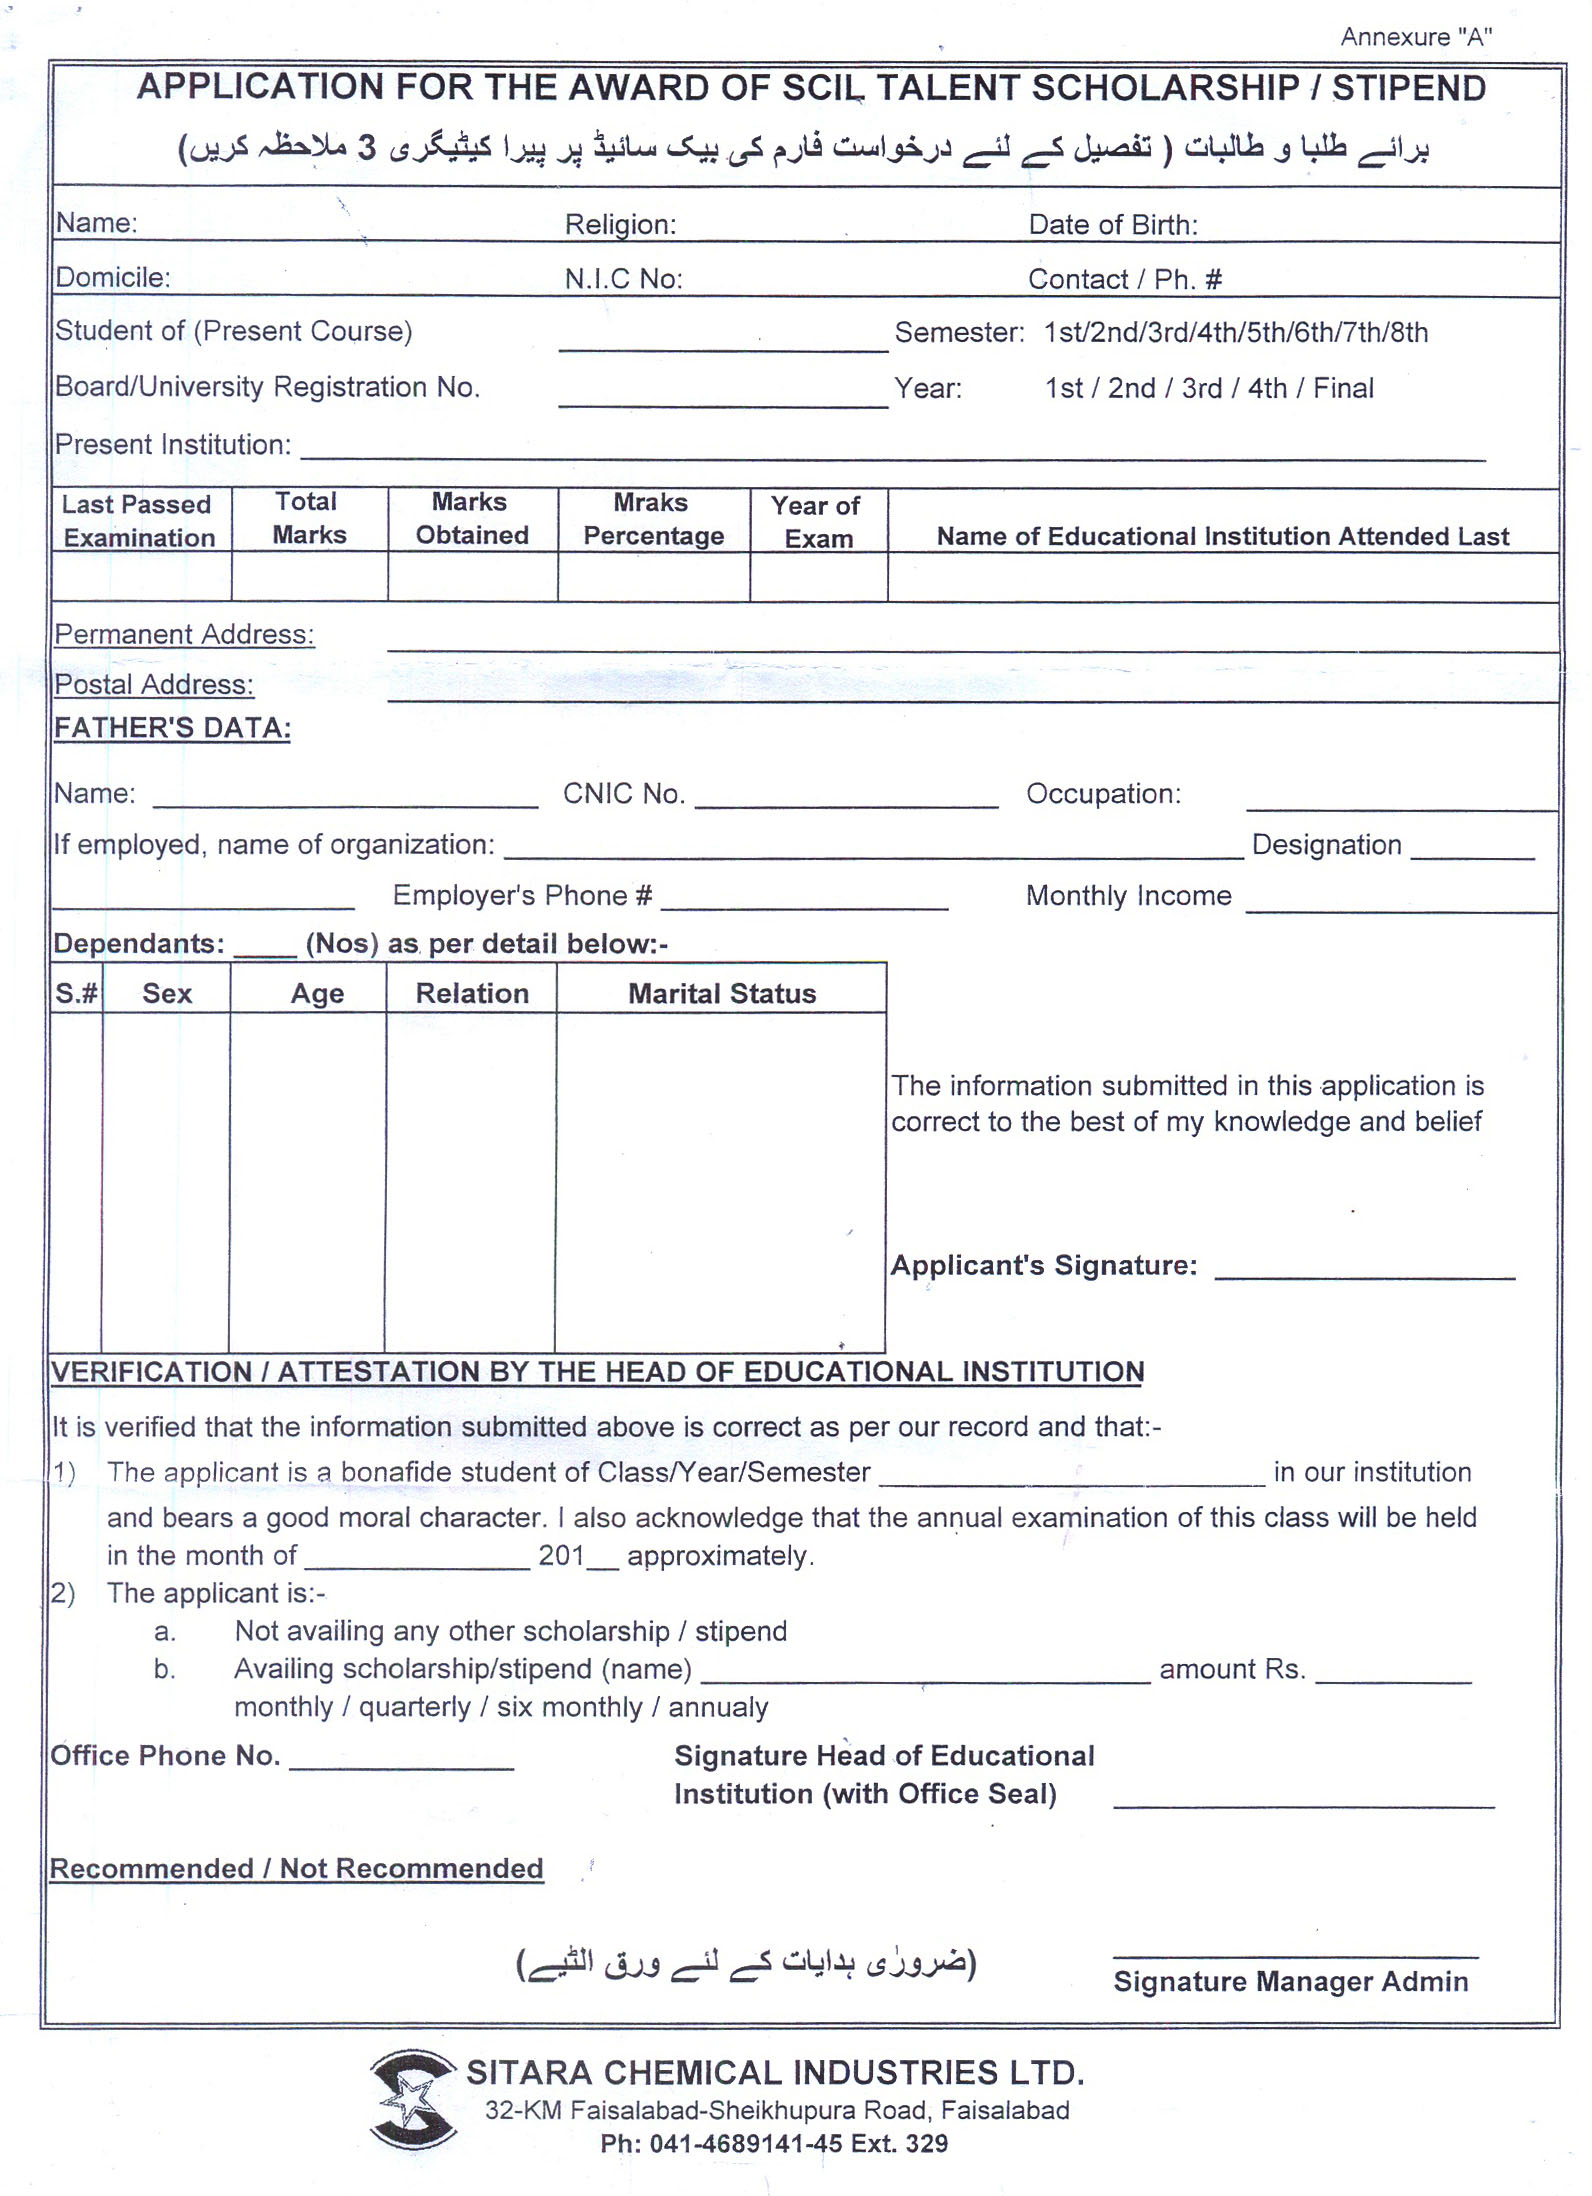 Scholarship Form | Sitara Chemical Industries Ltd Talent Scholarship